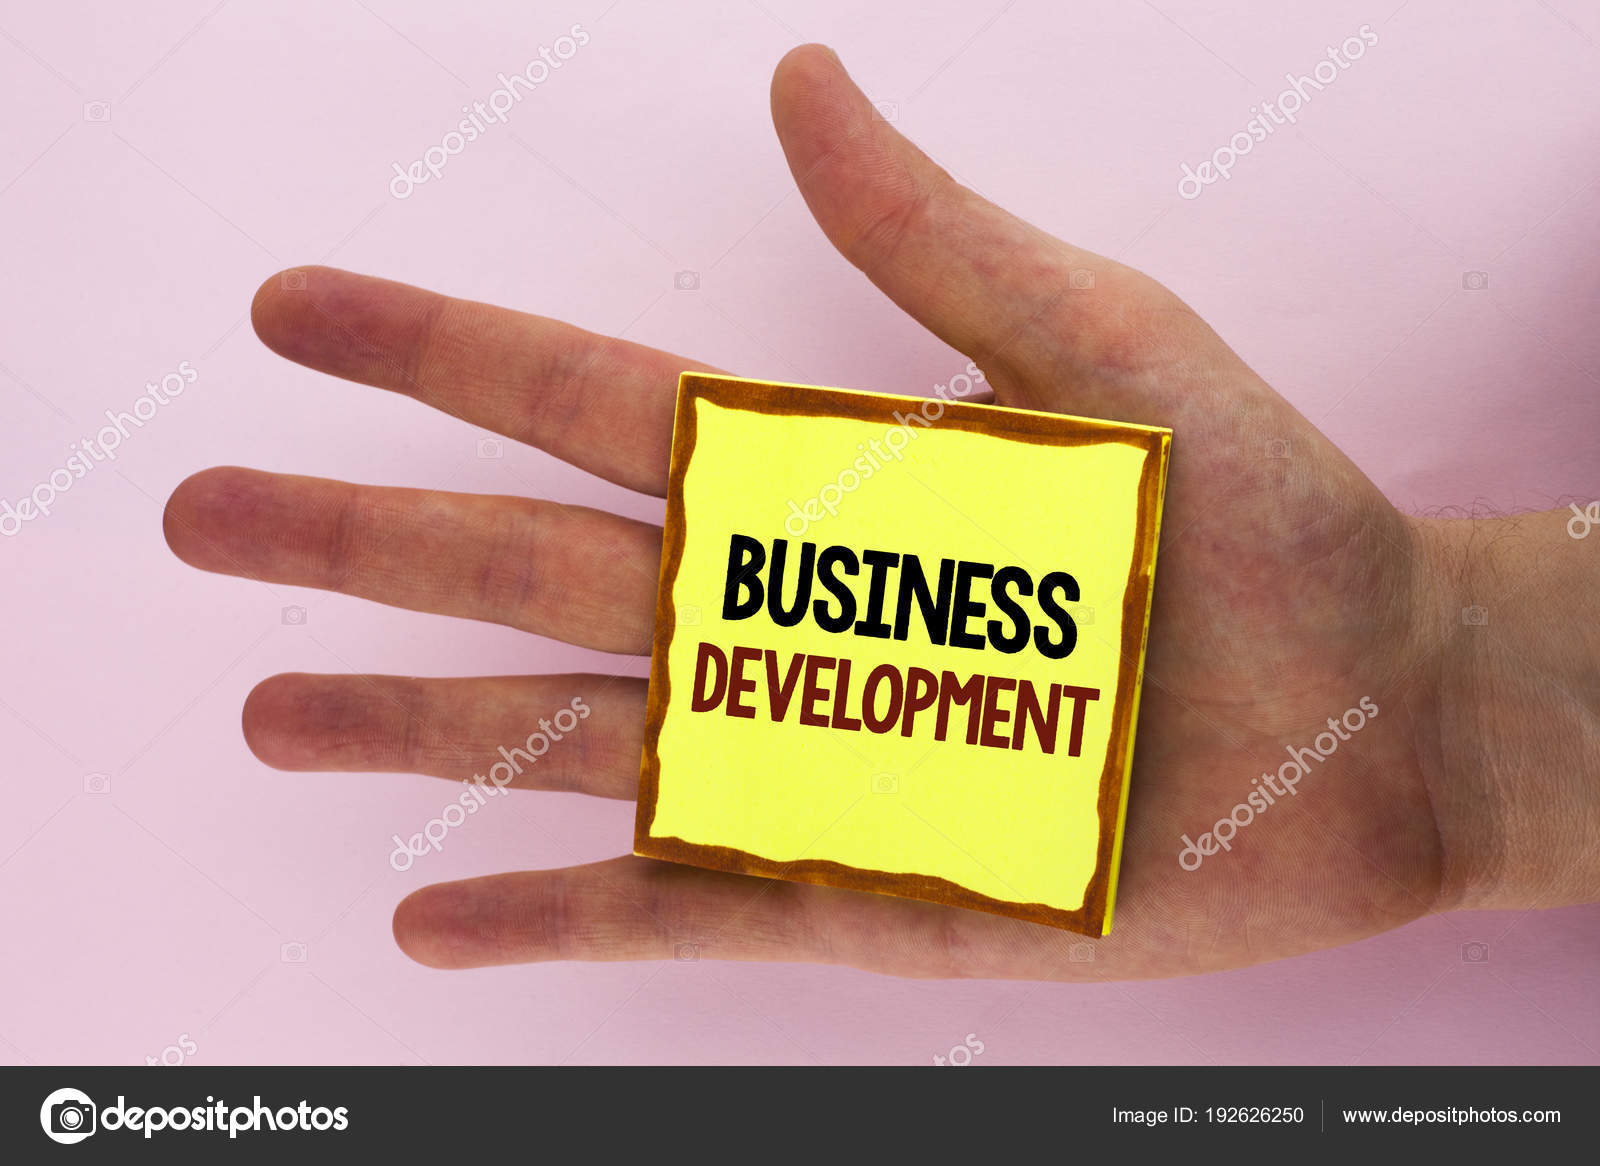 what is the meaning of growth and development